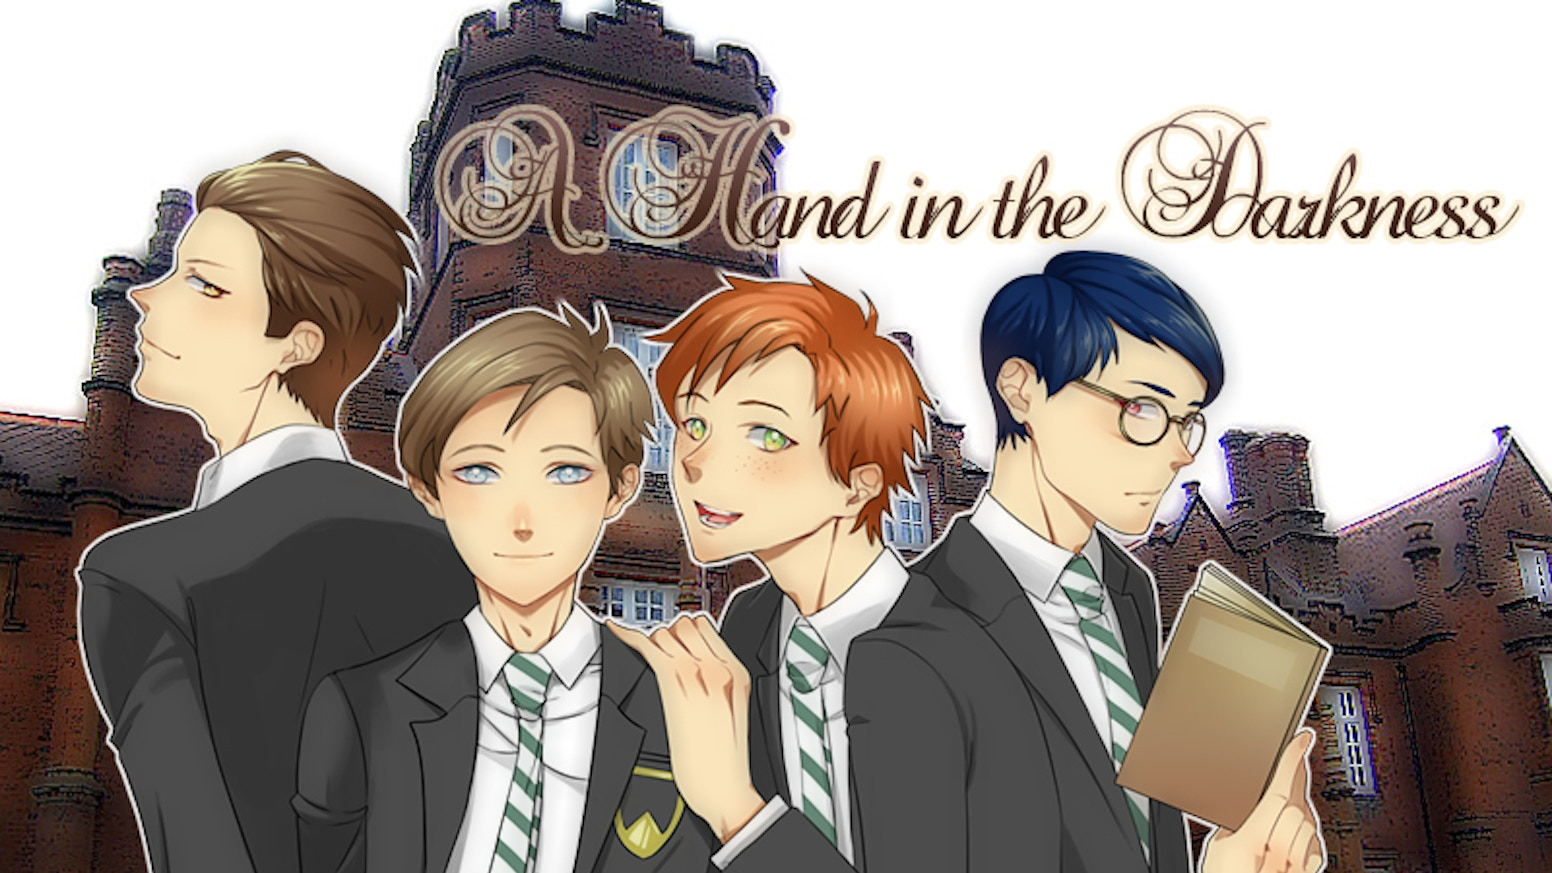 Follow Alex in the new chapter in his life at a British boarding school in the early 20th century! +18 BL visual novel